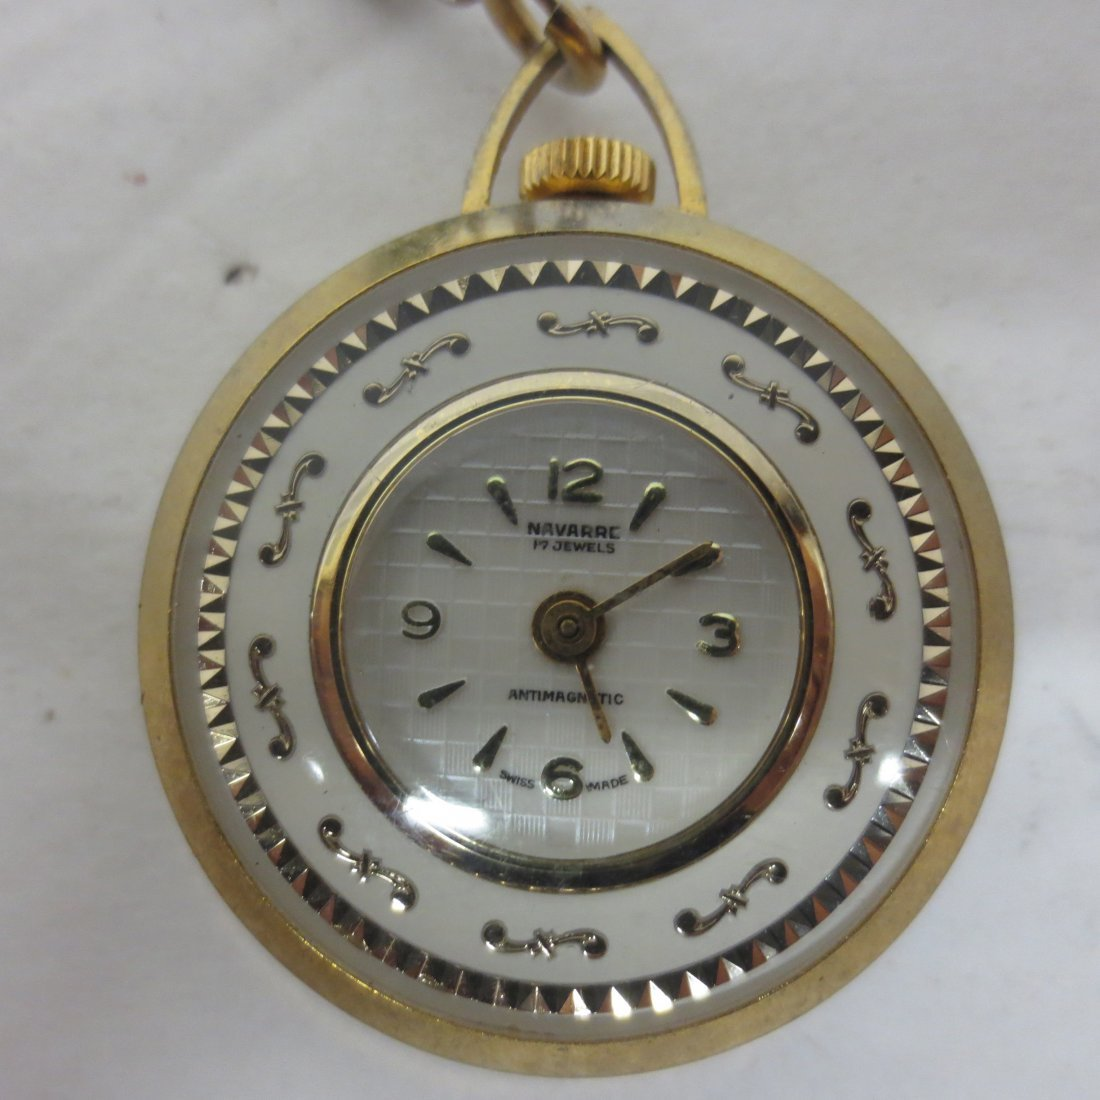 Pocket Watches, Lucerne, Genovit De Luxe, Navarre, - 9